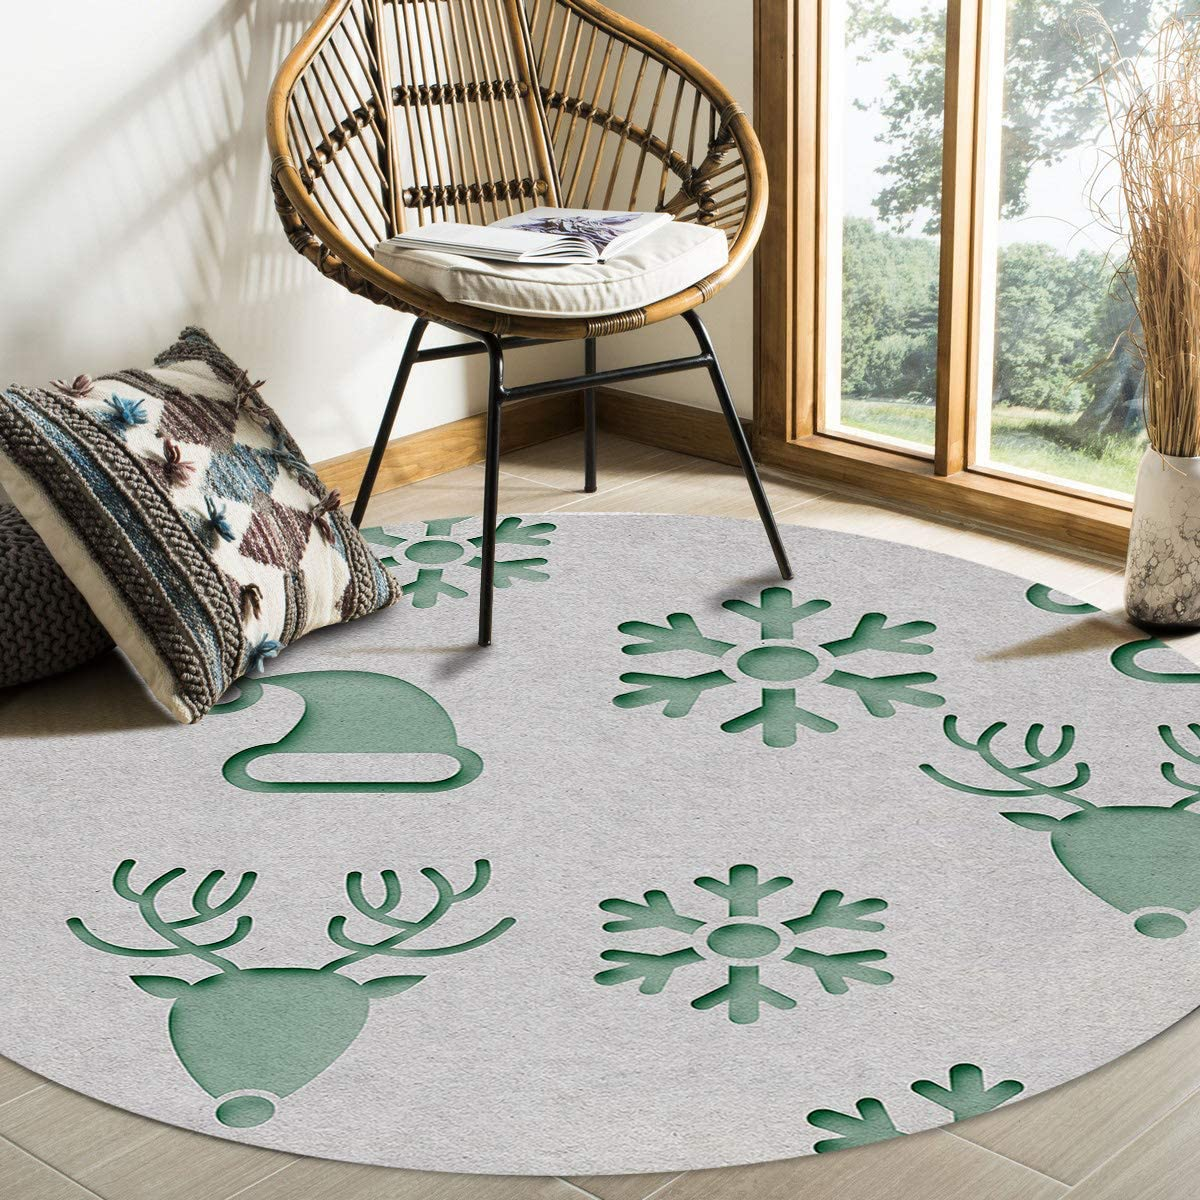 Olivefox Round Area Rugs Complete Free Shipping Christmas and Santa Green Hat Tulsa Mall Snowflake